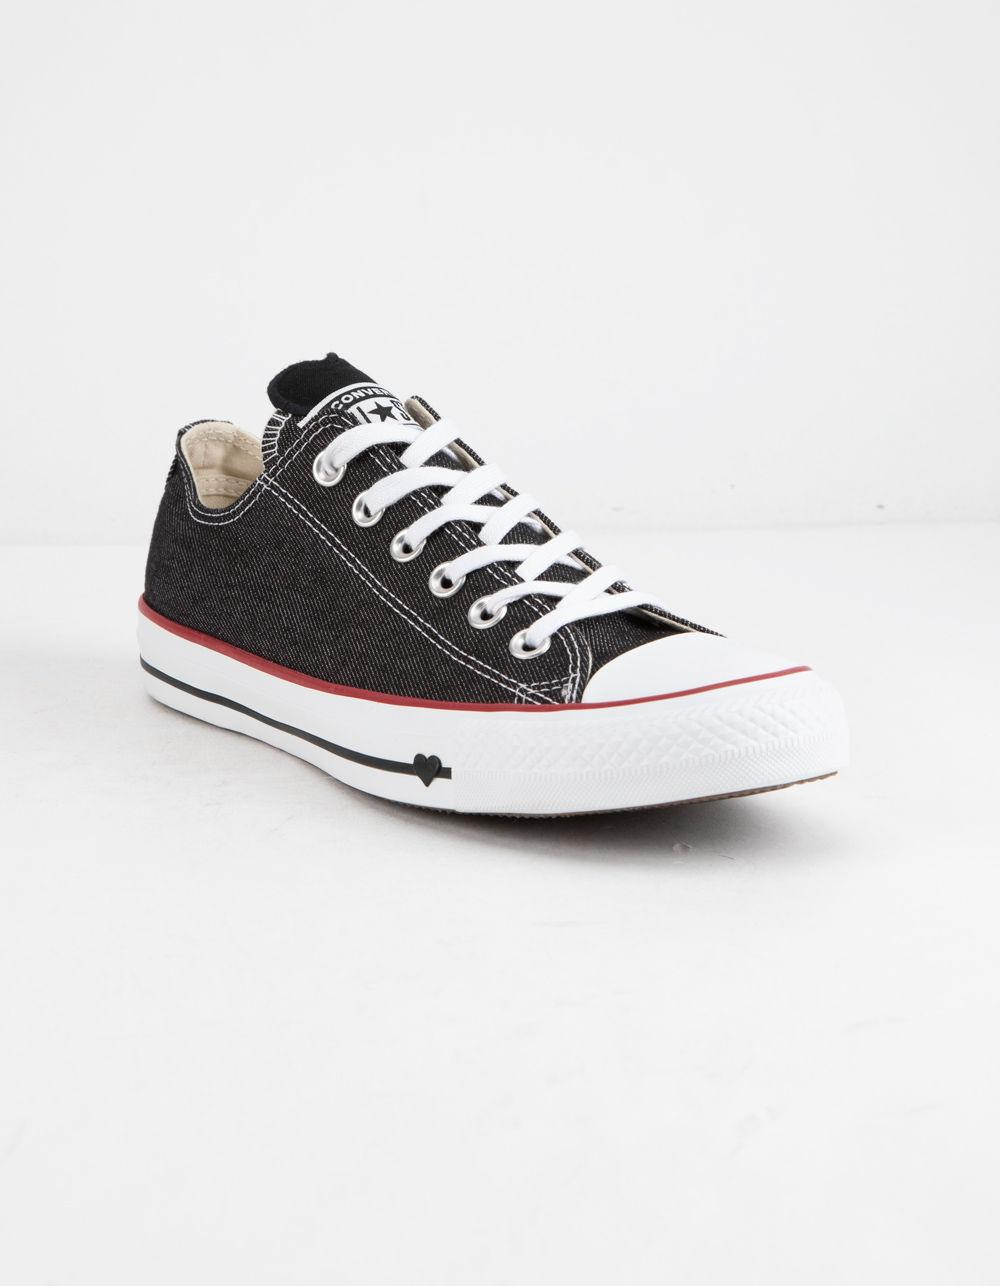 17d274a5dab5 Lyst - Converse Chuck Taylor All Star Denim Love Low Top Womens Shoes in  Black